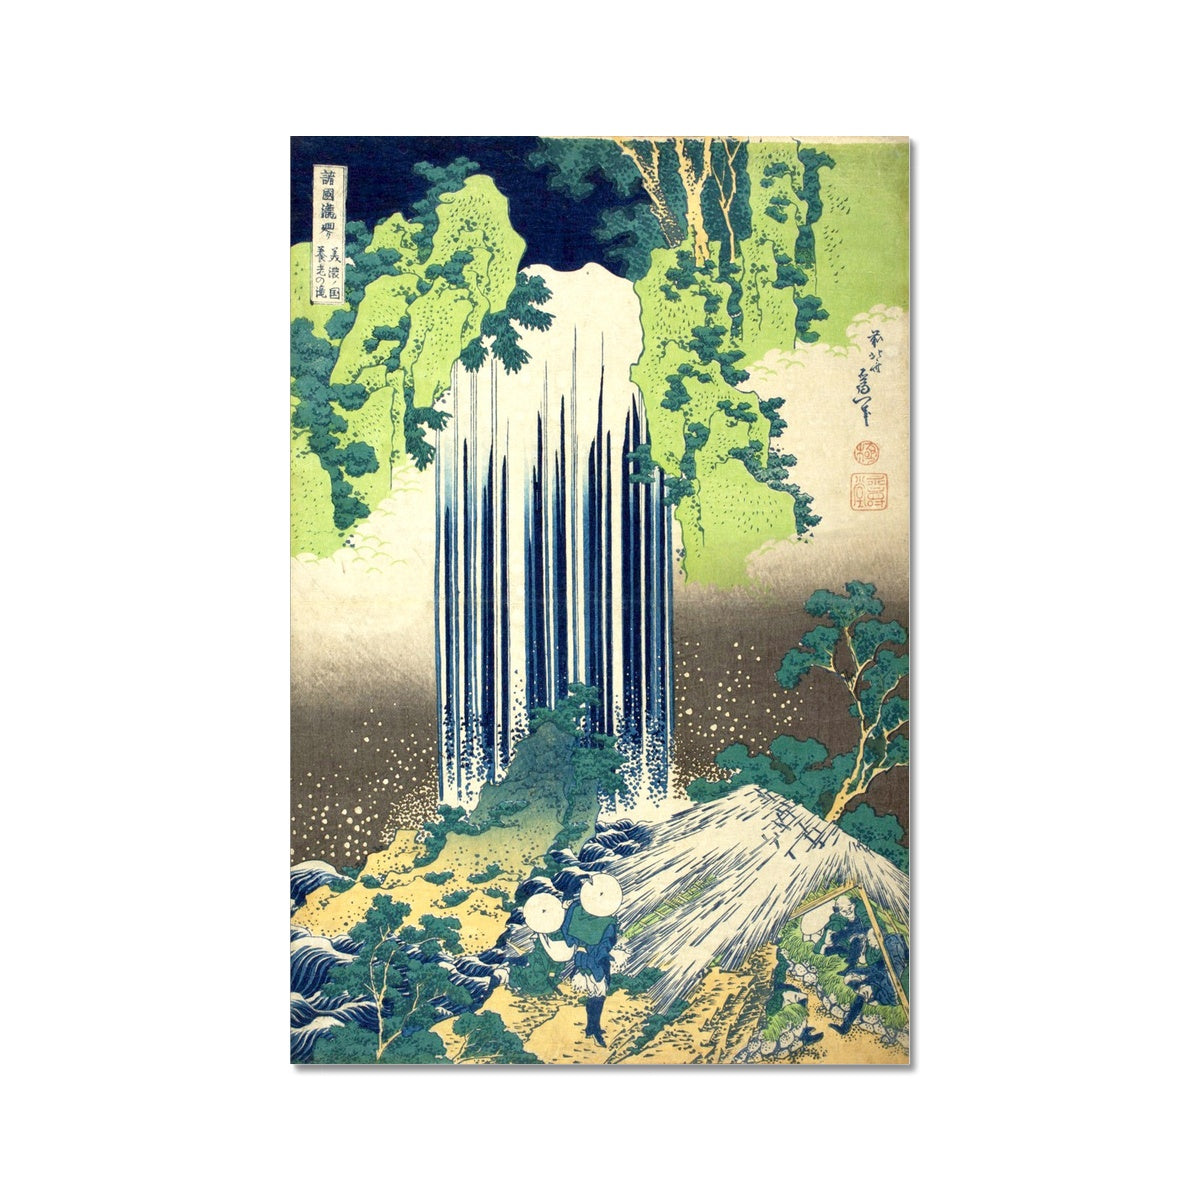 Yōrō Waterfall in Mino Province - Fine Art Print